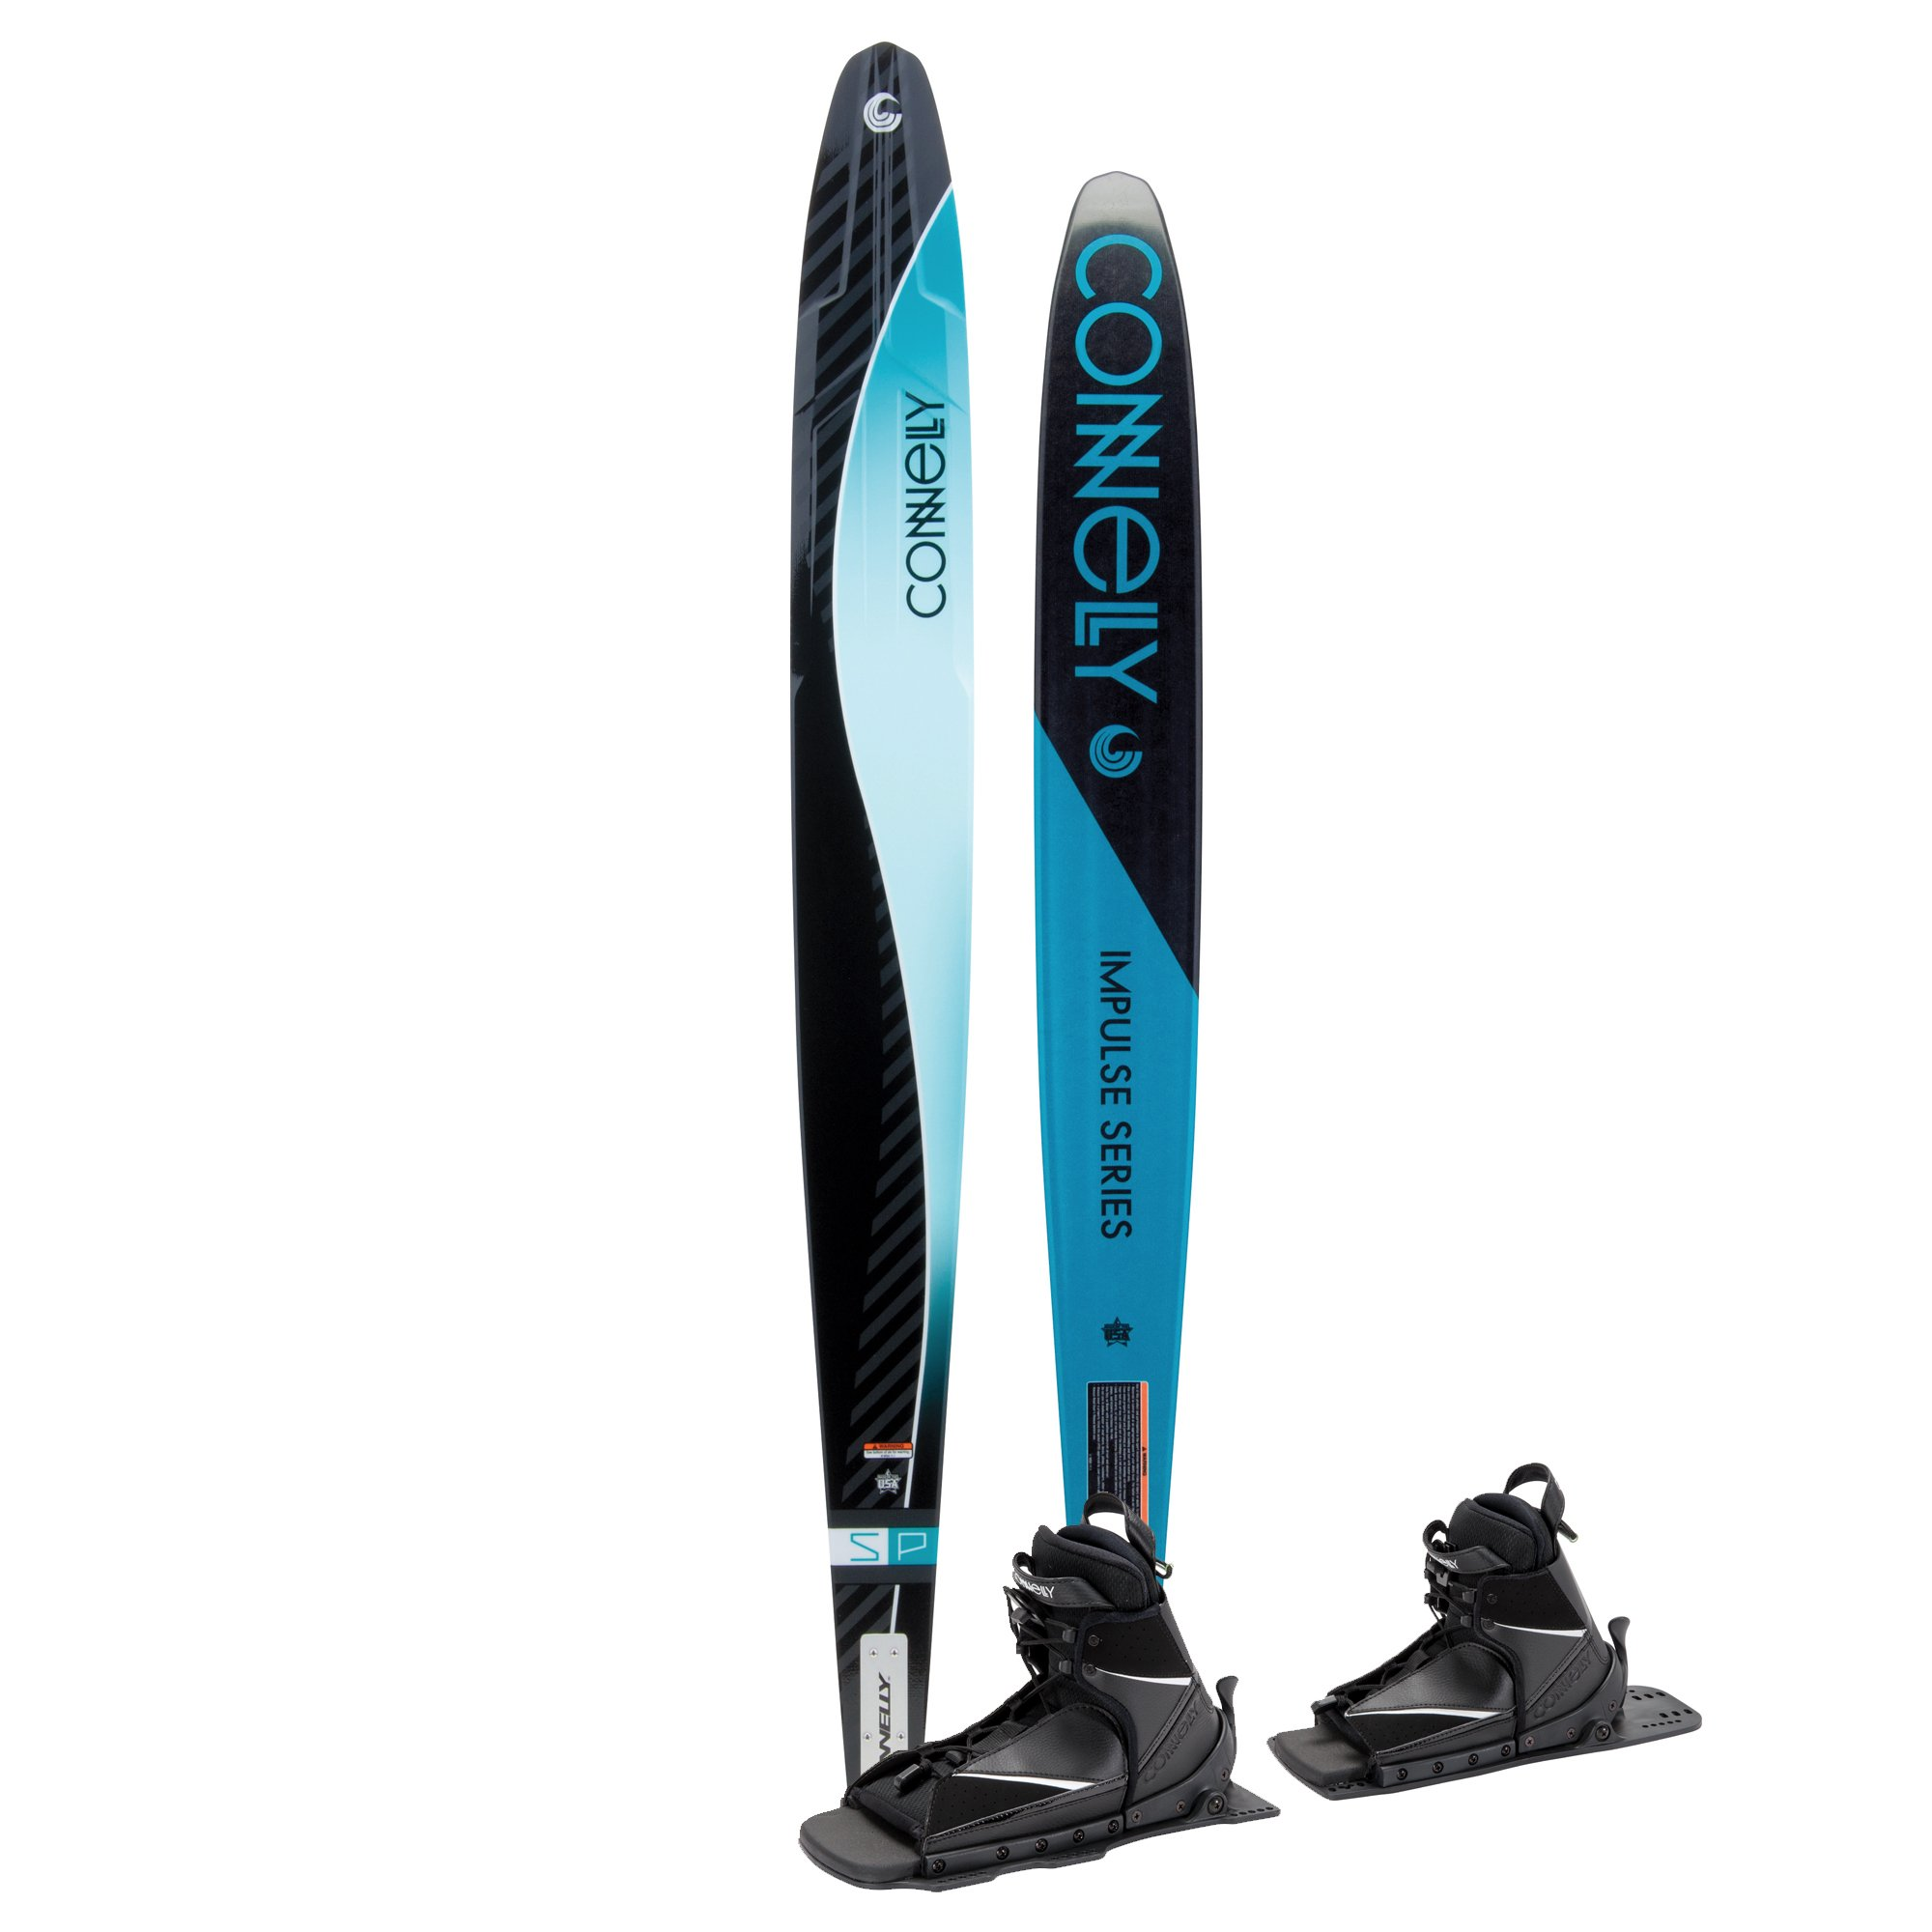 Connelly Skis SP Waterski 64-Inch (Double Nova Lace Adjustable Boot), Small/Medium by CWB